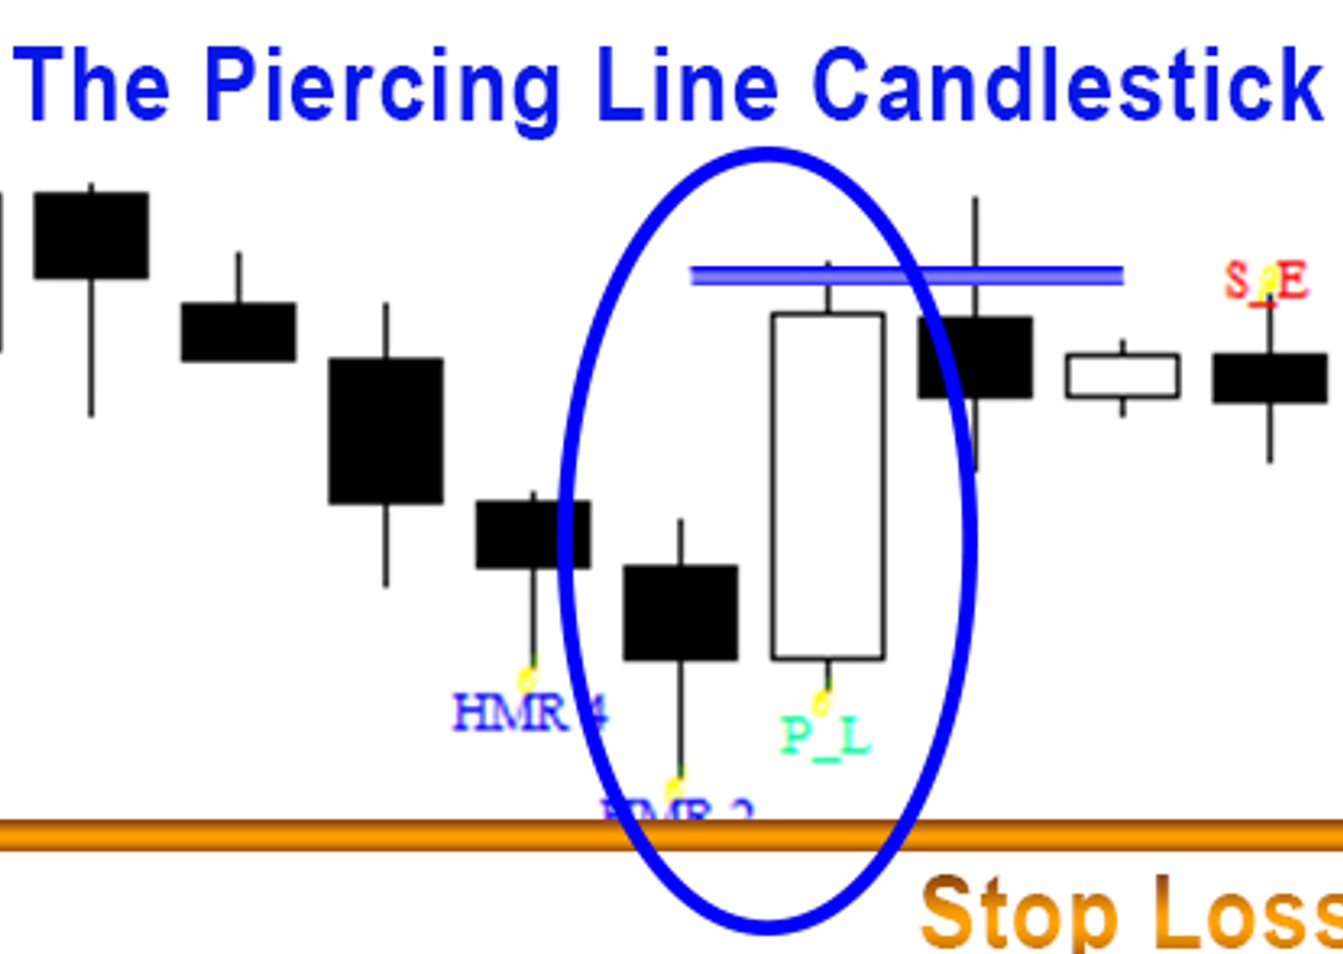 Price Action Candlestick Patterns 5 The Piercing Line Dark